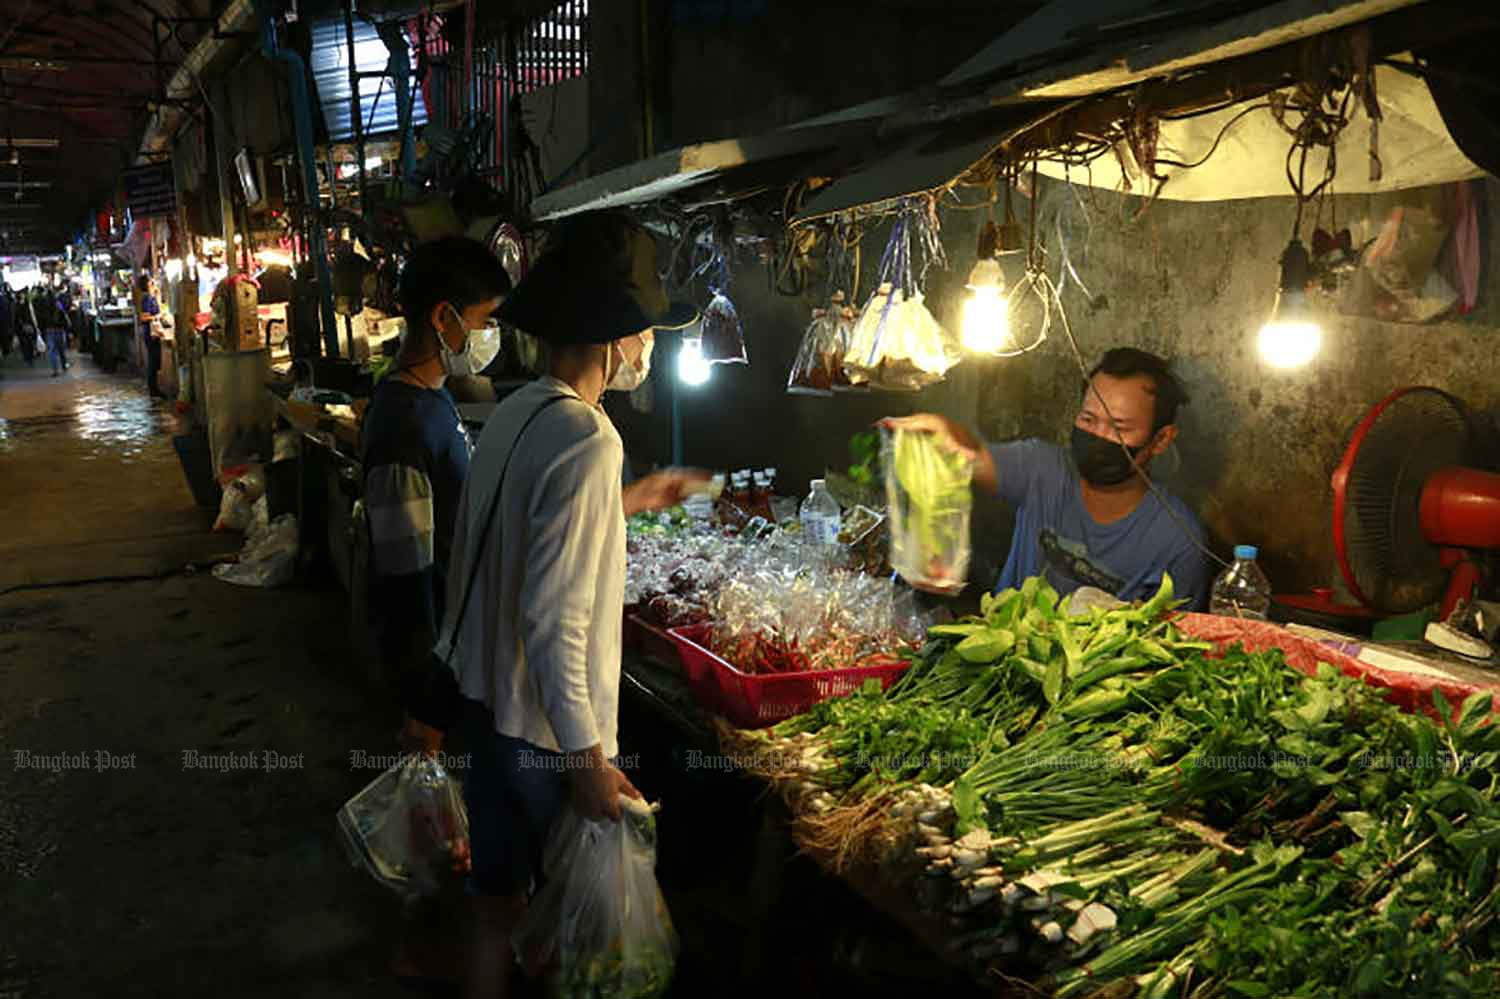 Shoppers buy fresh produce at Bang Kapi market in Bang Kapi district of Bangkok on Wednesday. The market has been ordered by City Hall to close for three days staring on Thursday after several vendors tested positive for Covid-19. (Photo: Arnun Chonmahatrakool)